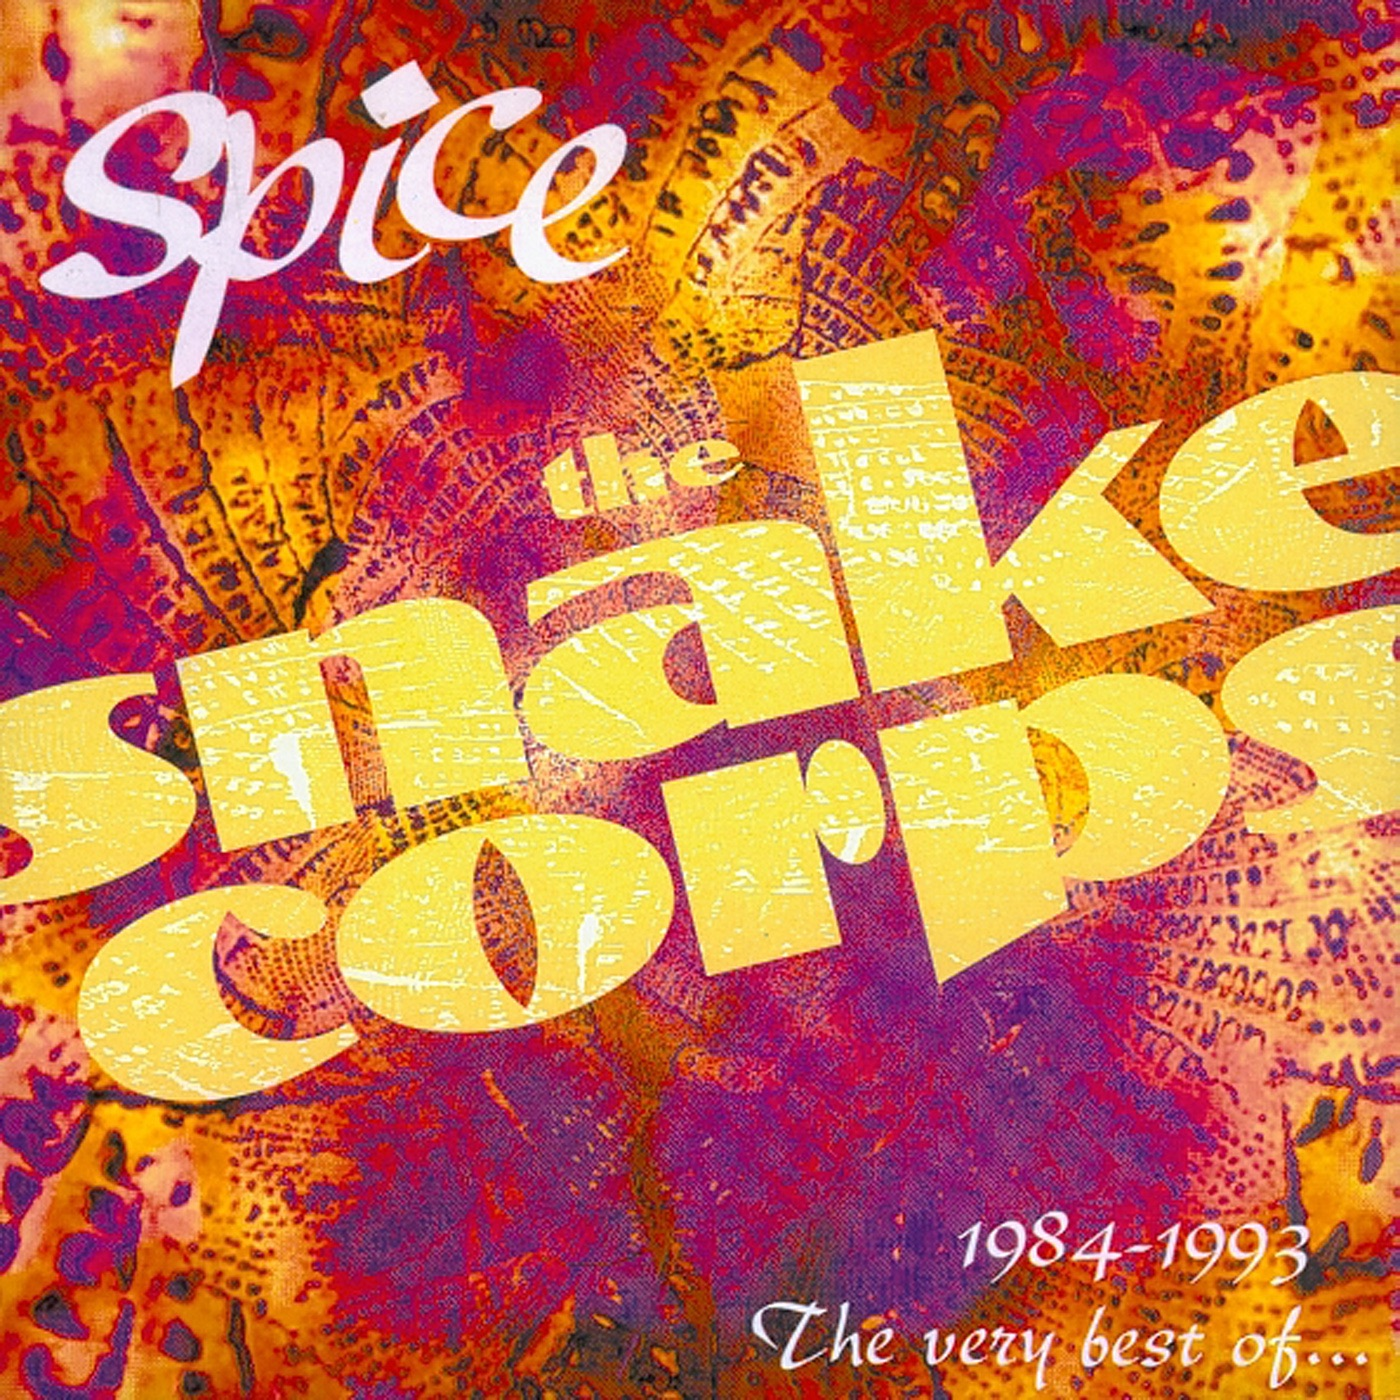 Snake Corps - 1984-1993, The Very Best Of